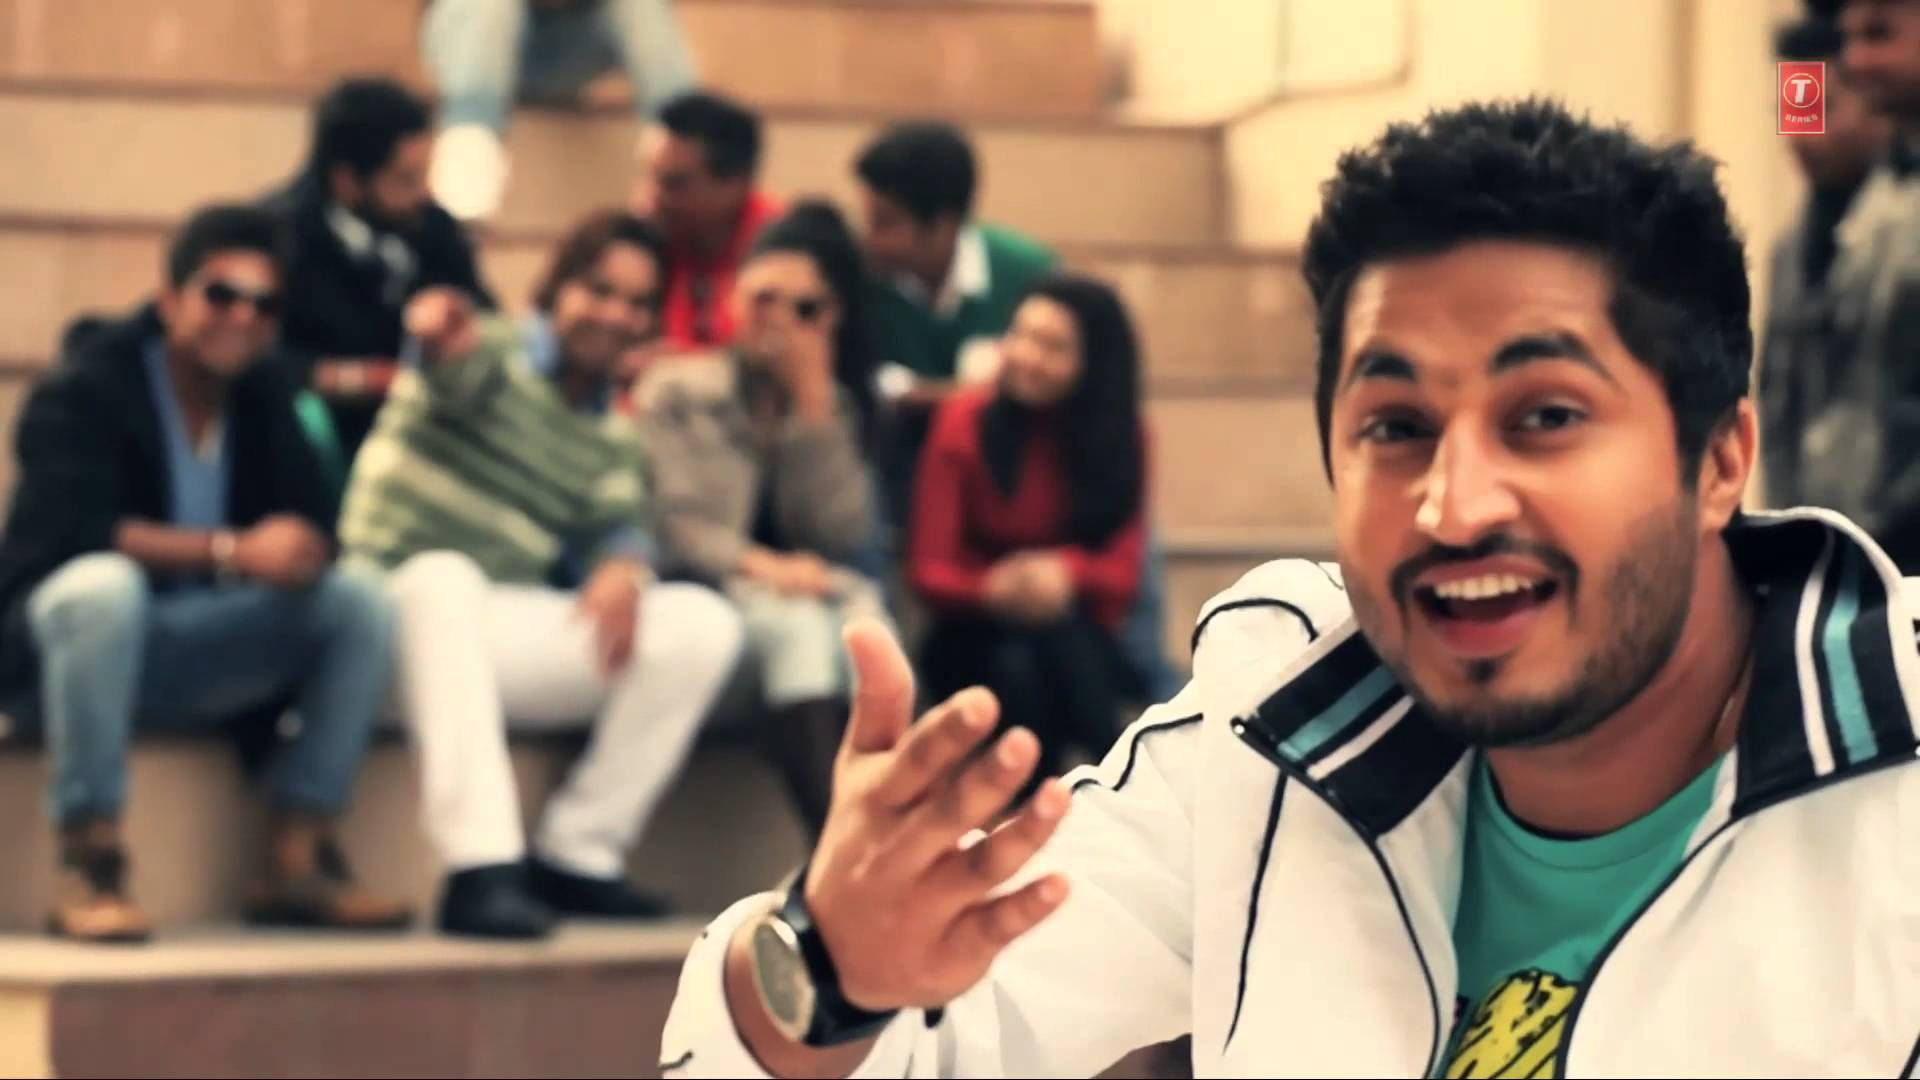 Wallpaper download jassi gill - Presenting The Most Awaited Video Song Lancer Of Jassi Gill Latest Album Batchmate 2 After Giving Successful Songs Like Vigre Sharabi Churiyan